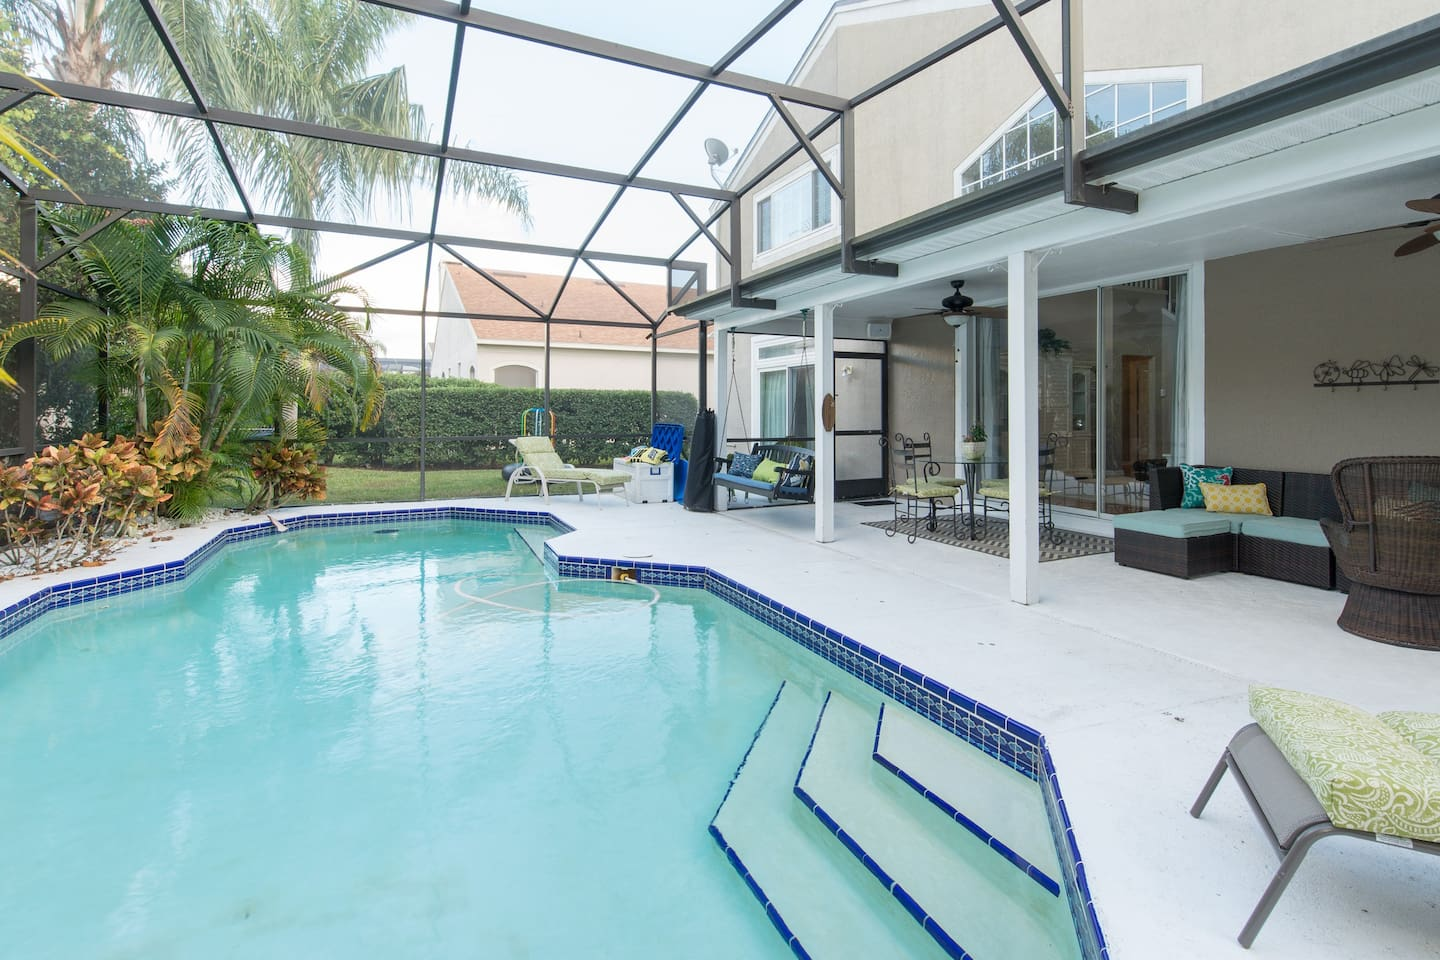 Luxury home by disney world florida in orlando for Pool design orlando